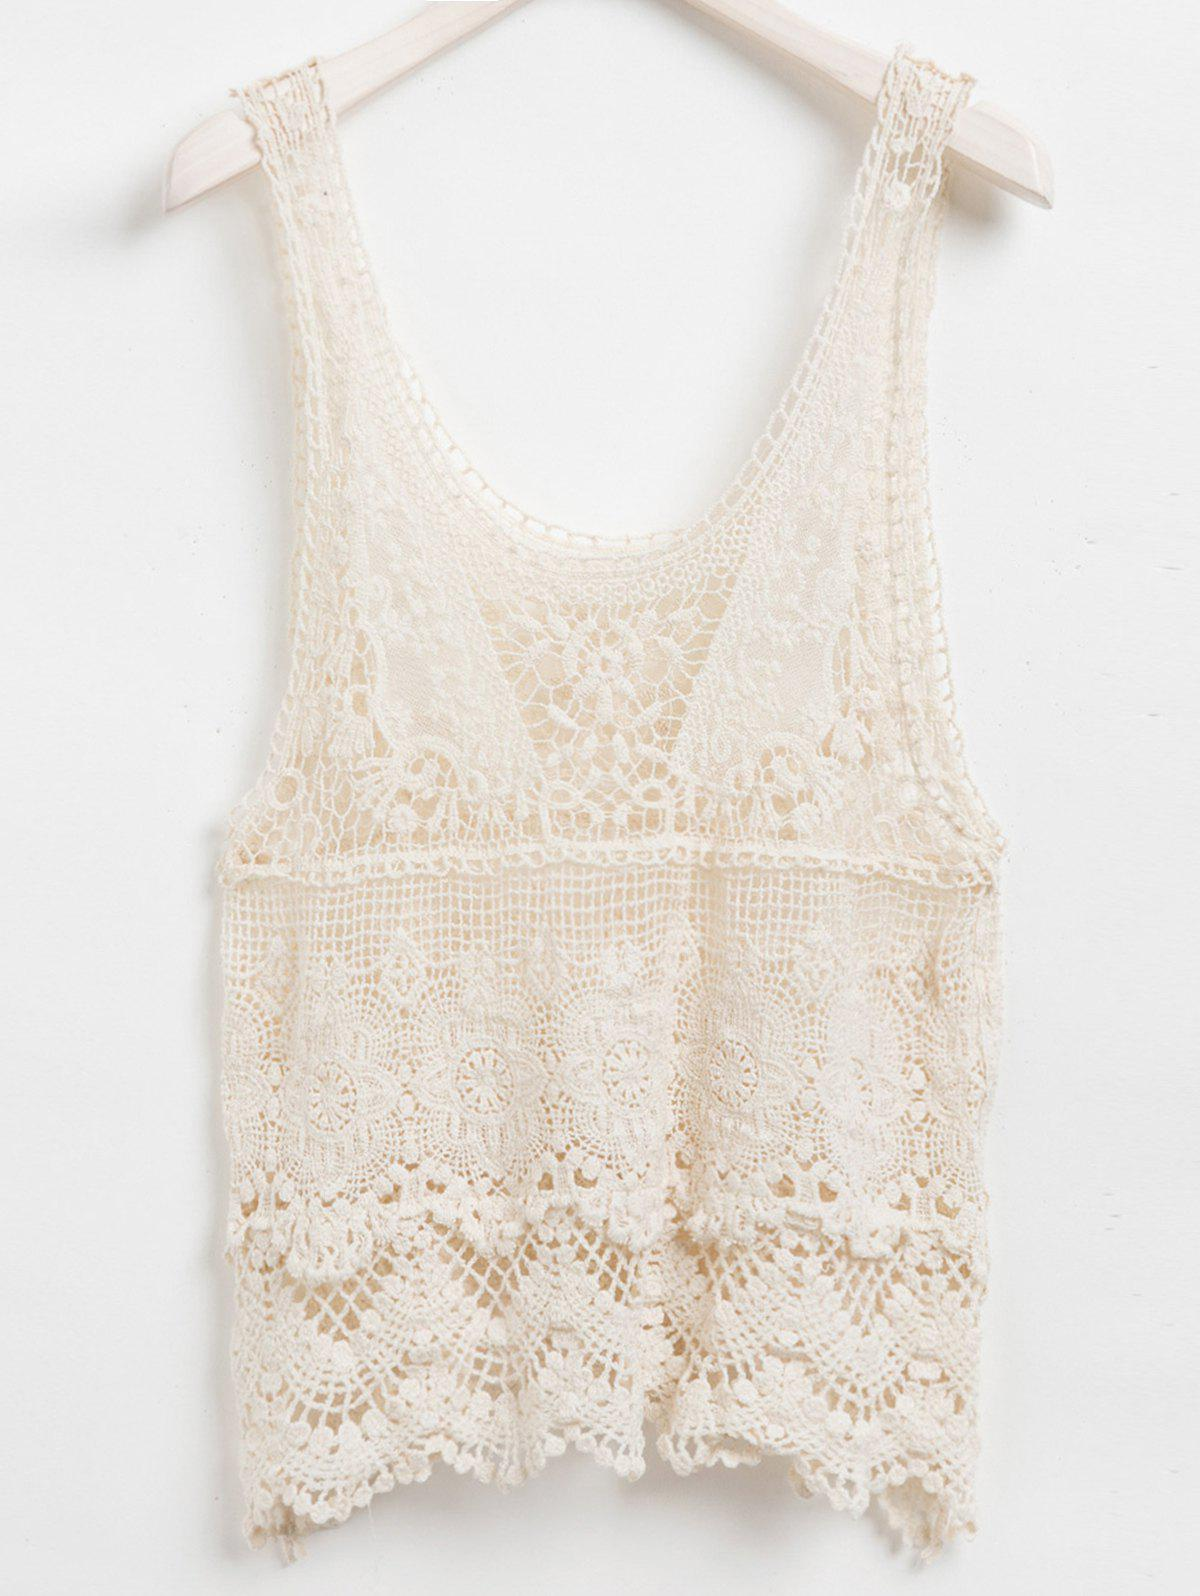 Crochet Embellished Sleeveless Scoop Neck Solid Color Hollow Out Design Lace Tank Top - APRICOT ONE SIZE